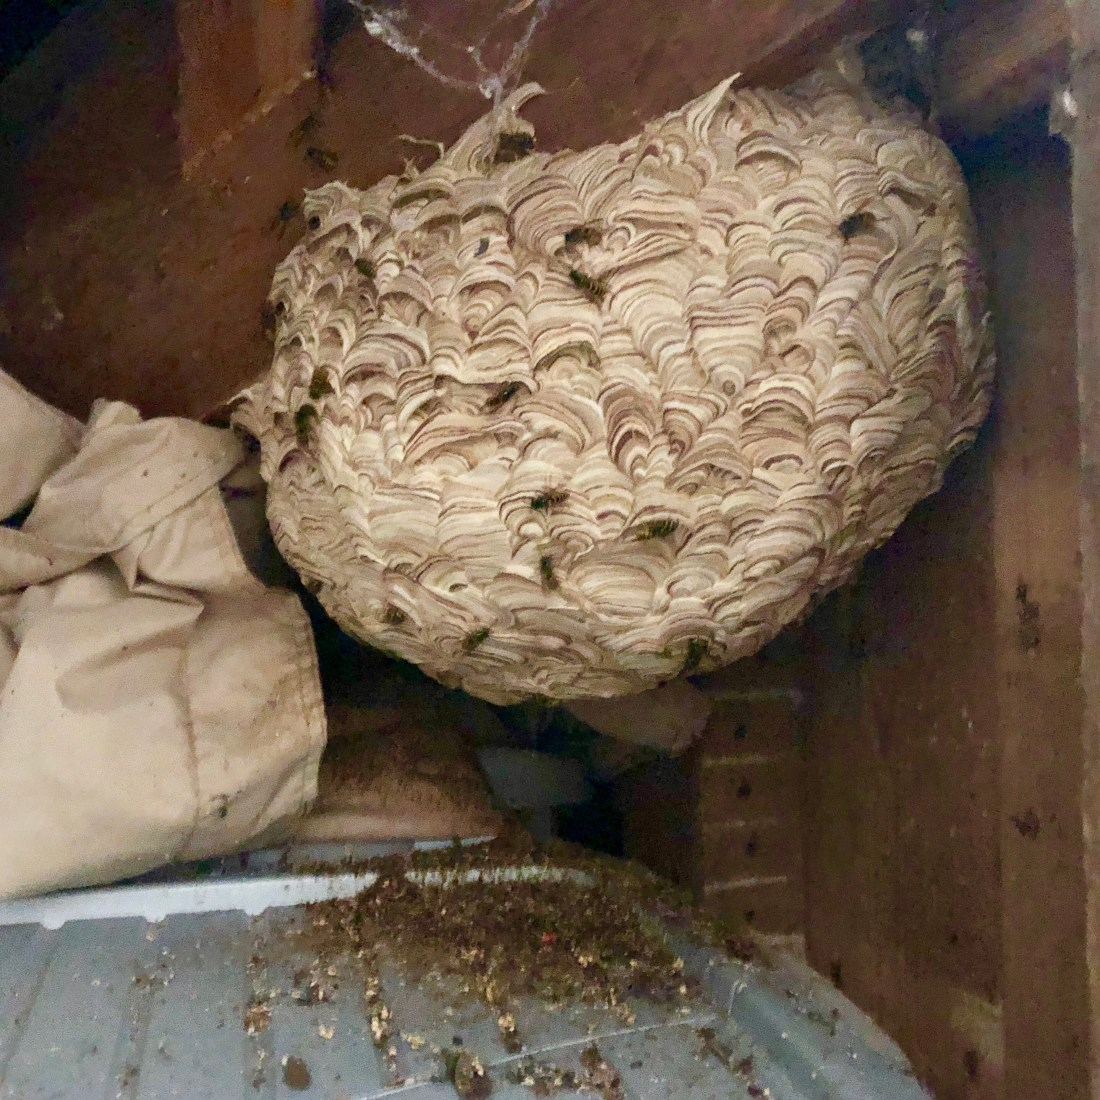 Wasp Nest Removal - Bentley Environmental - Pest Control